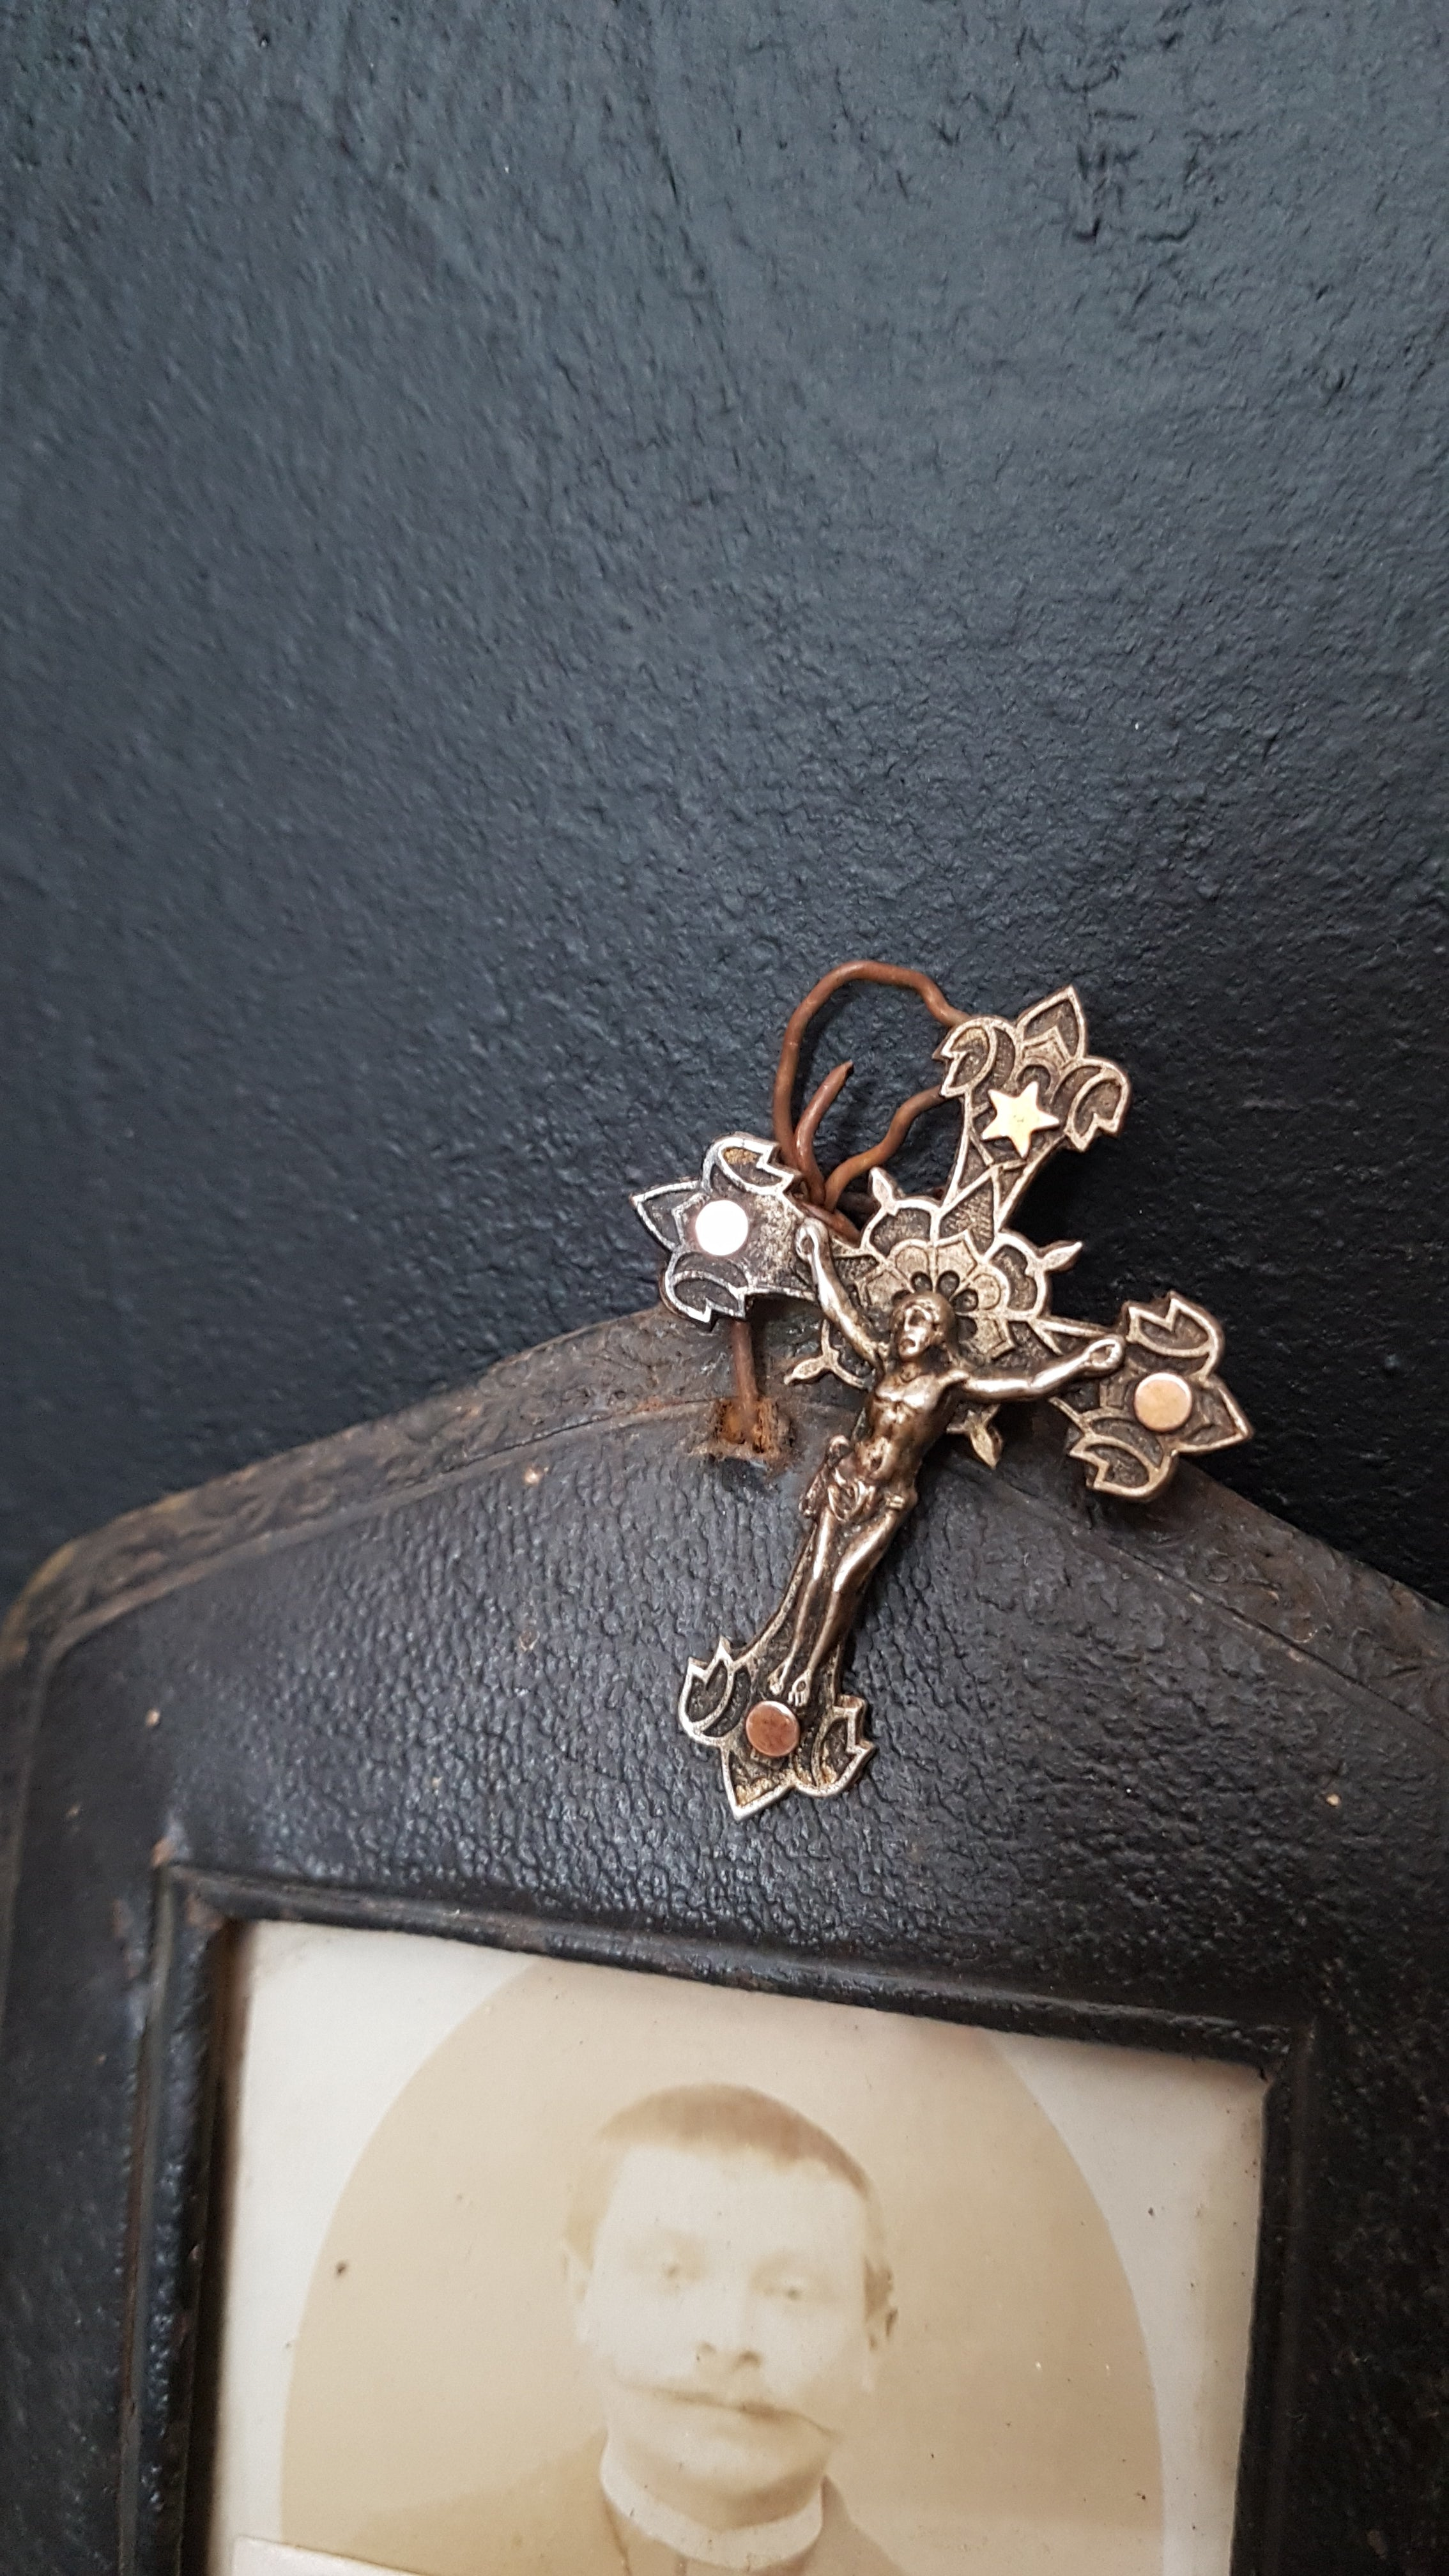 Antique crucifix brooch attached to picture frame. Victorian jewellery